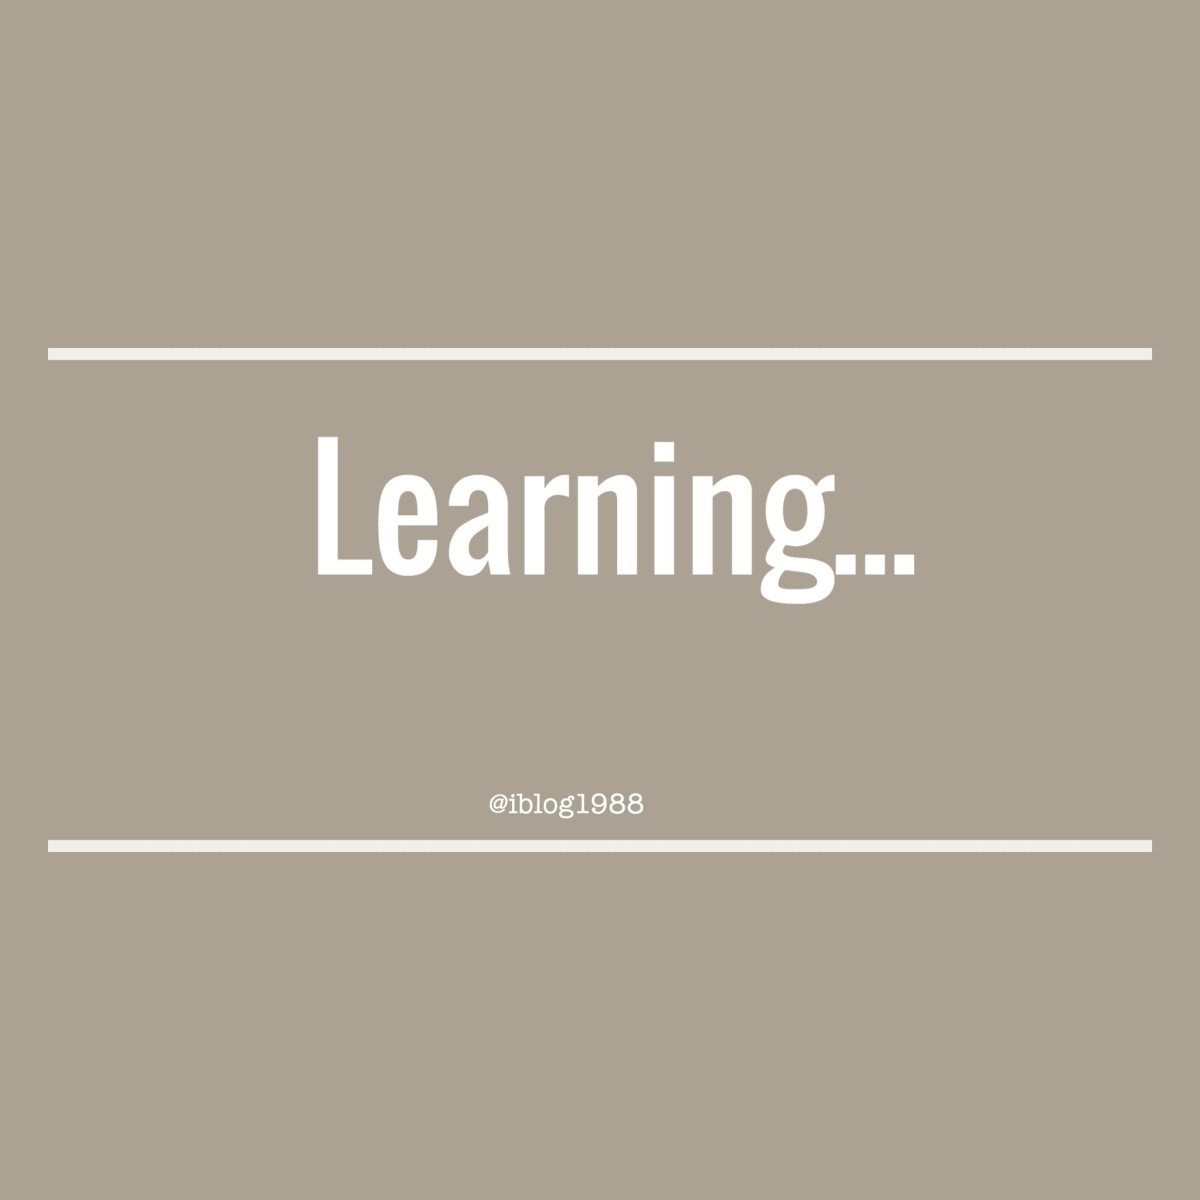 Daily Prompt: Learning